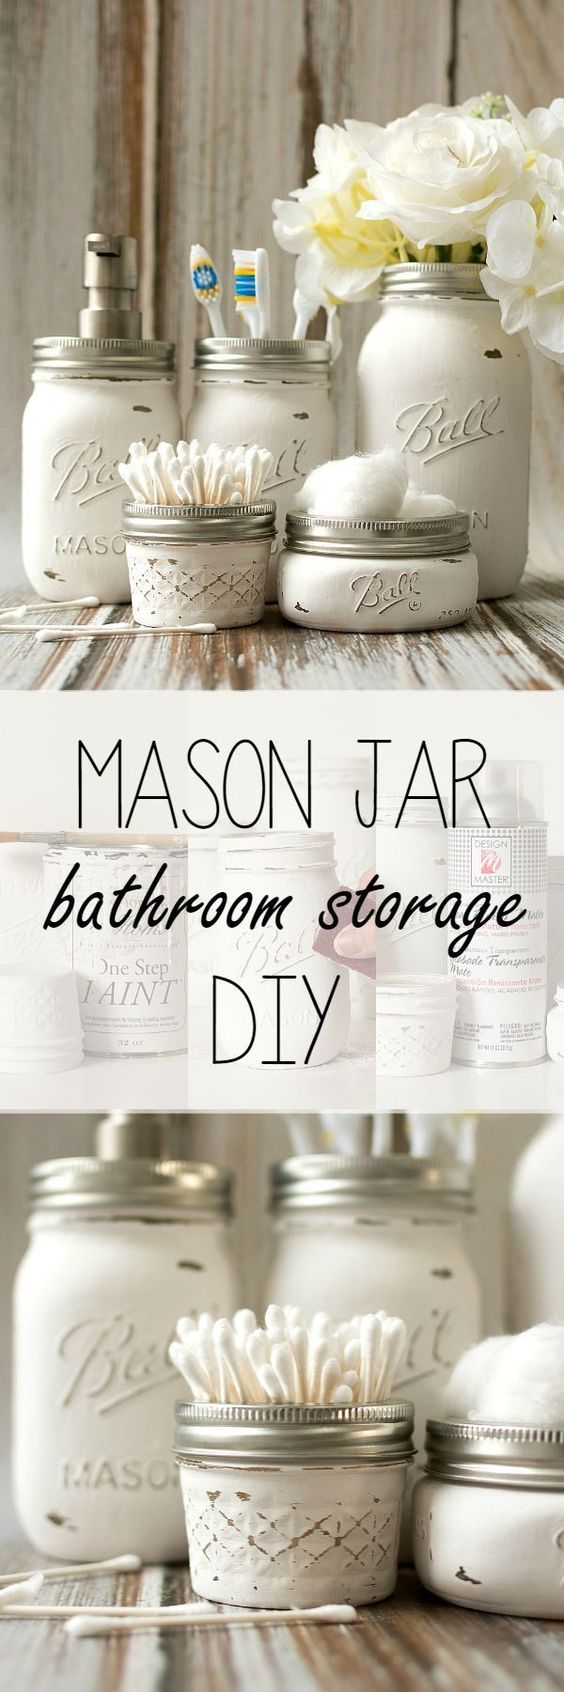 35 Awesome Diy Projects Using Mason Jars 2018